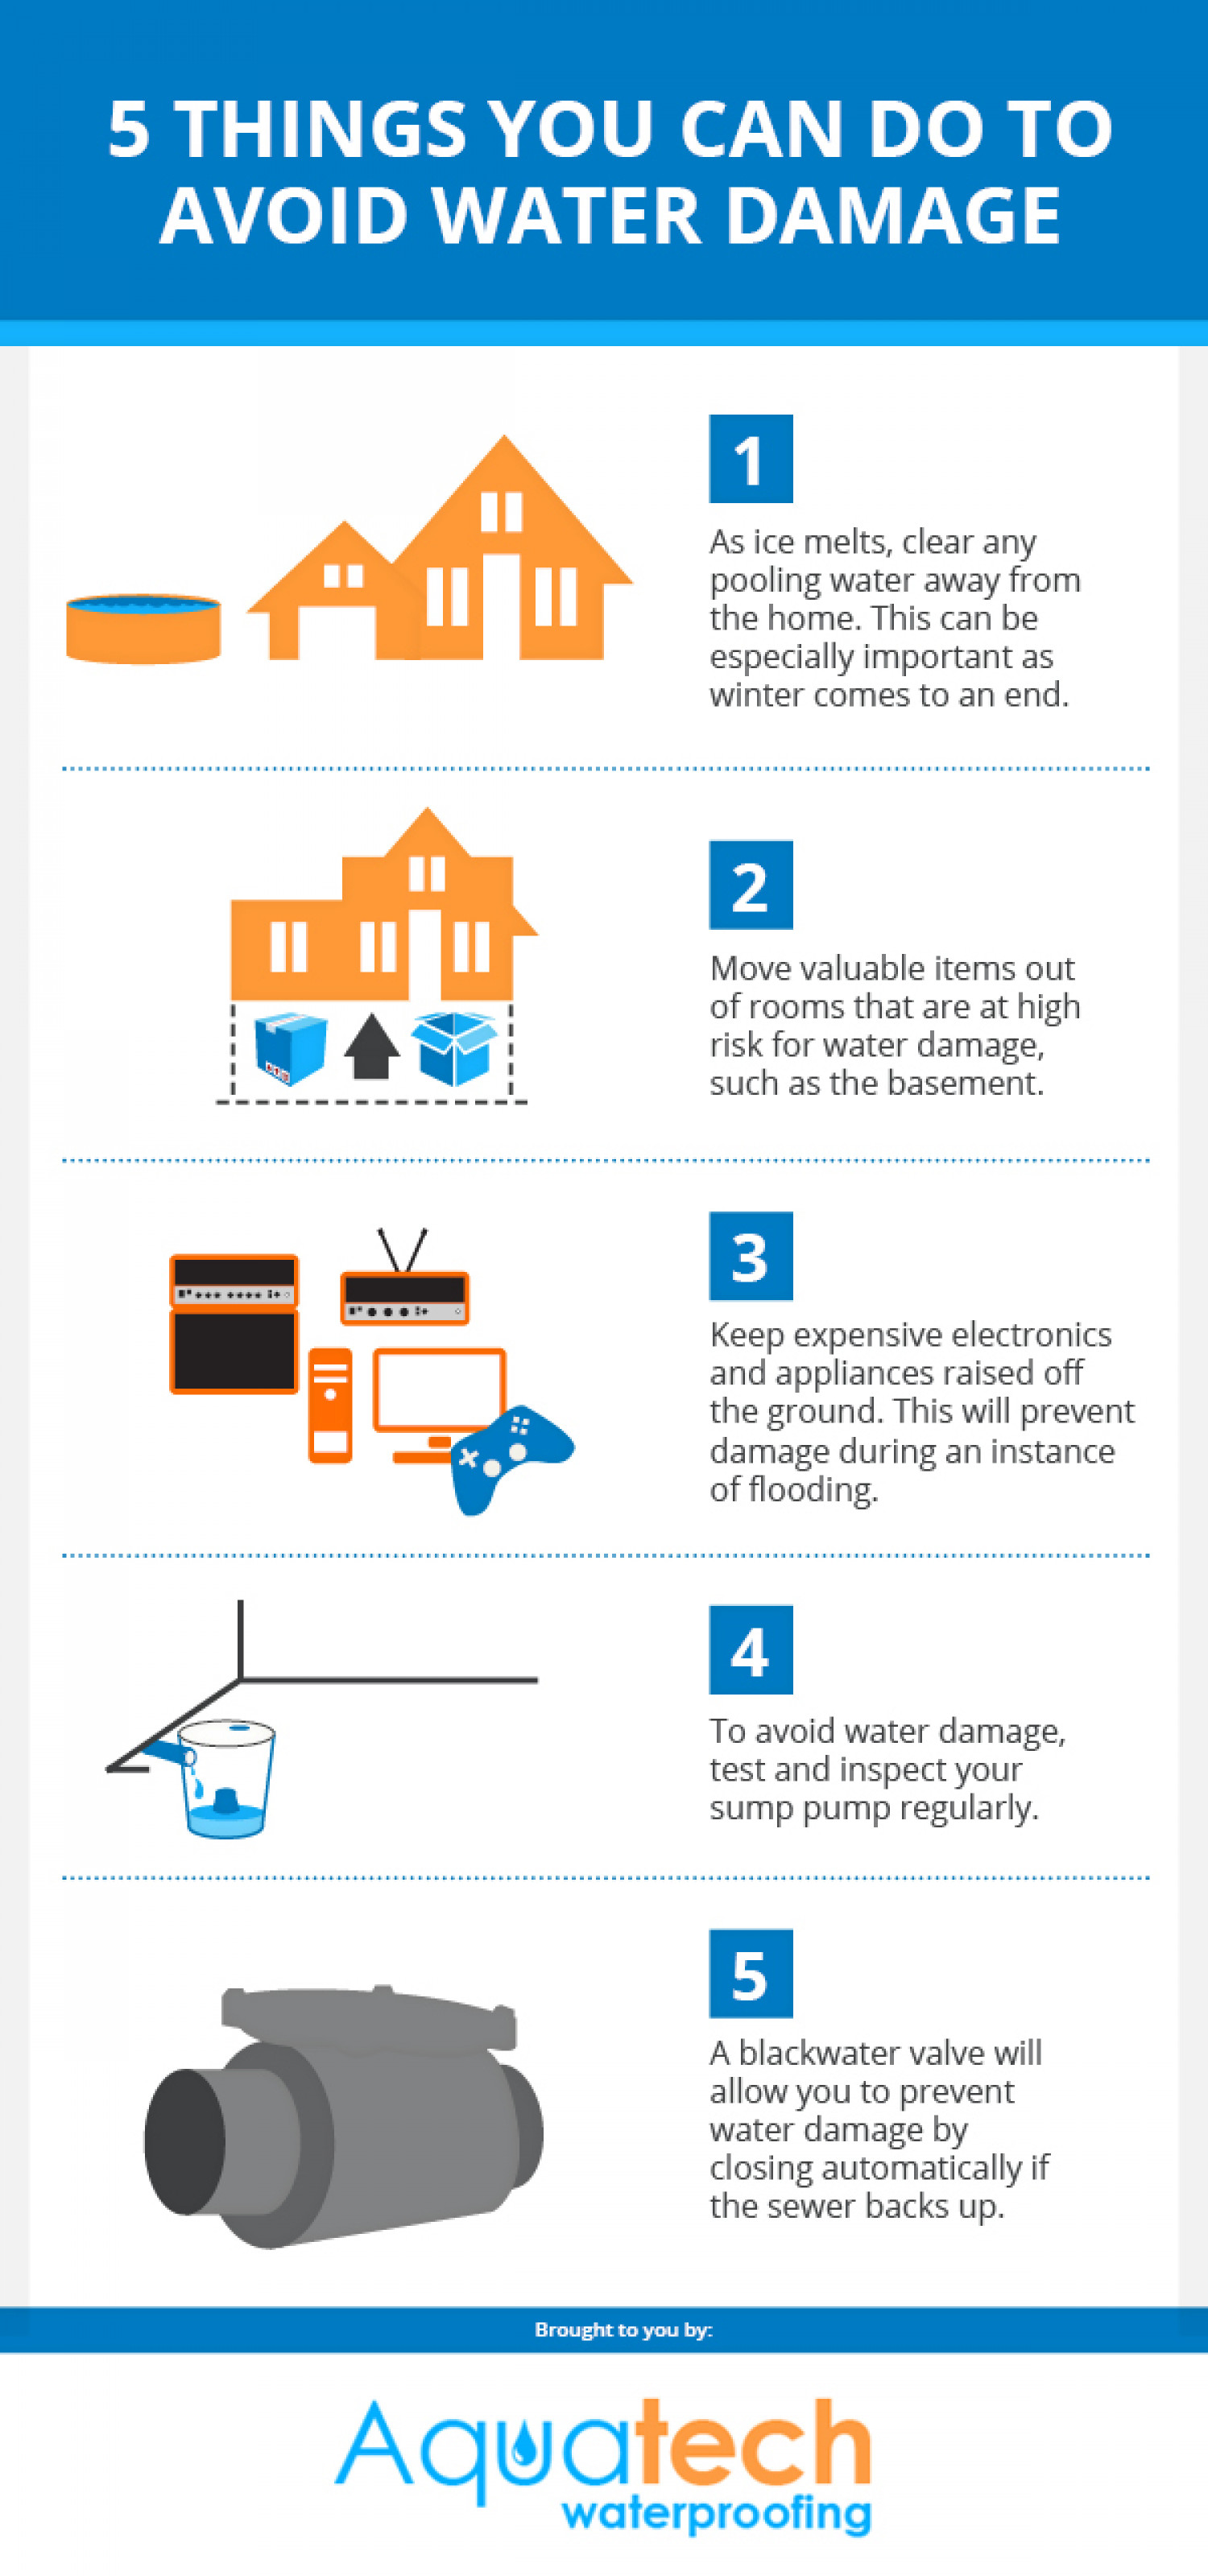 5 Things You Can Do To Avoid Water Damage Infographic